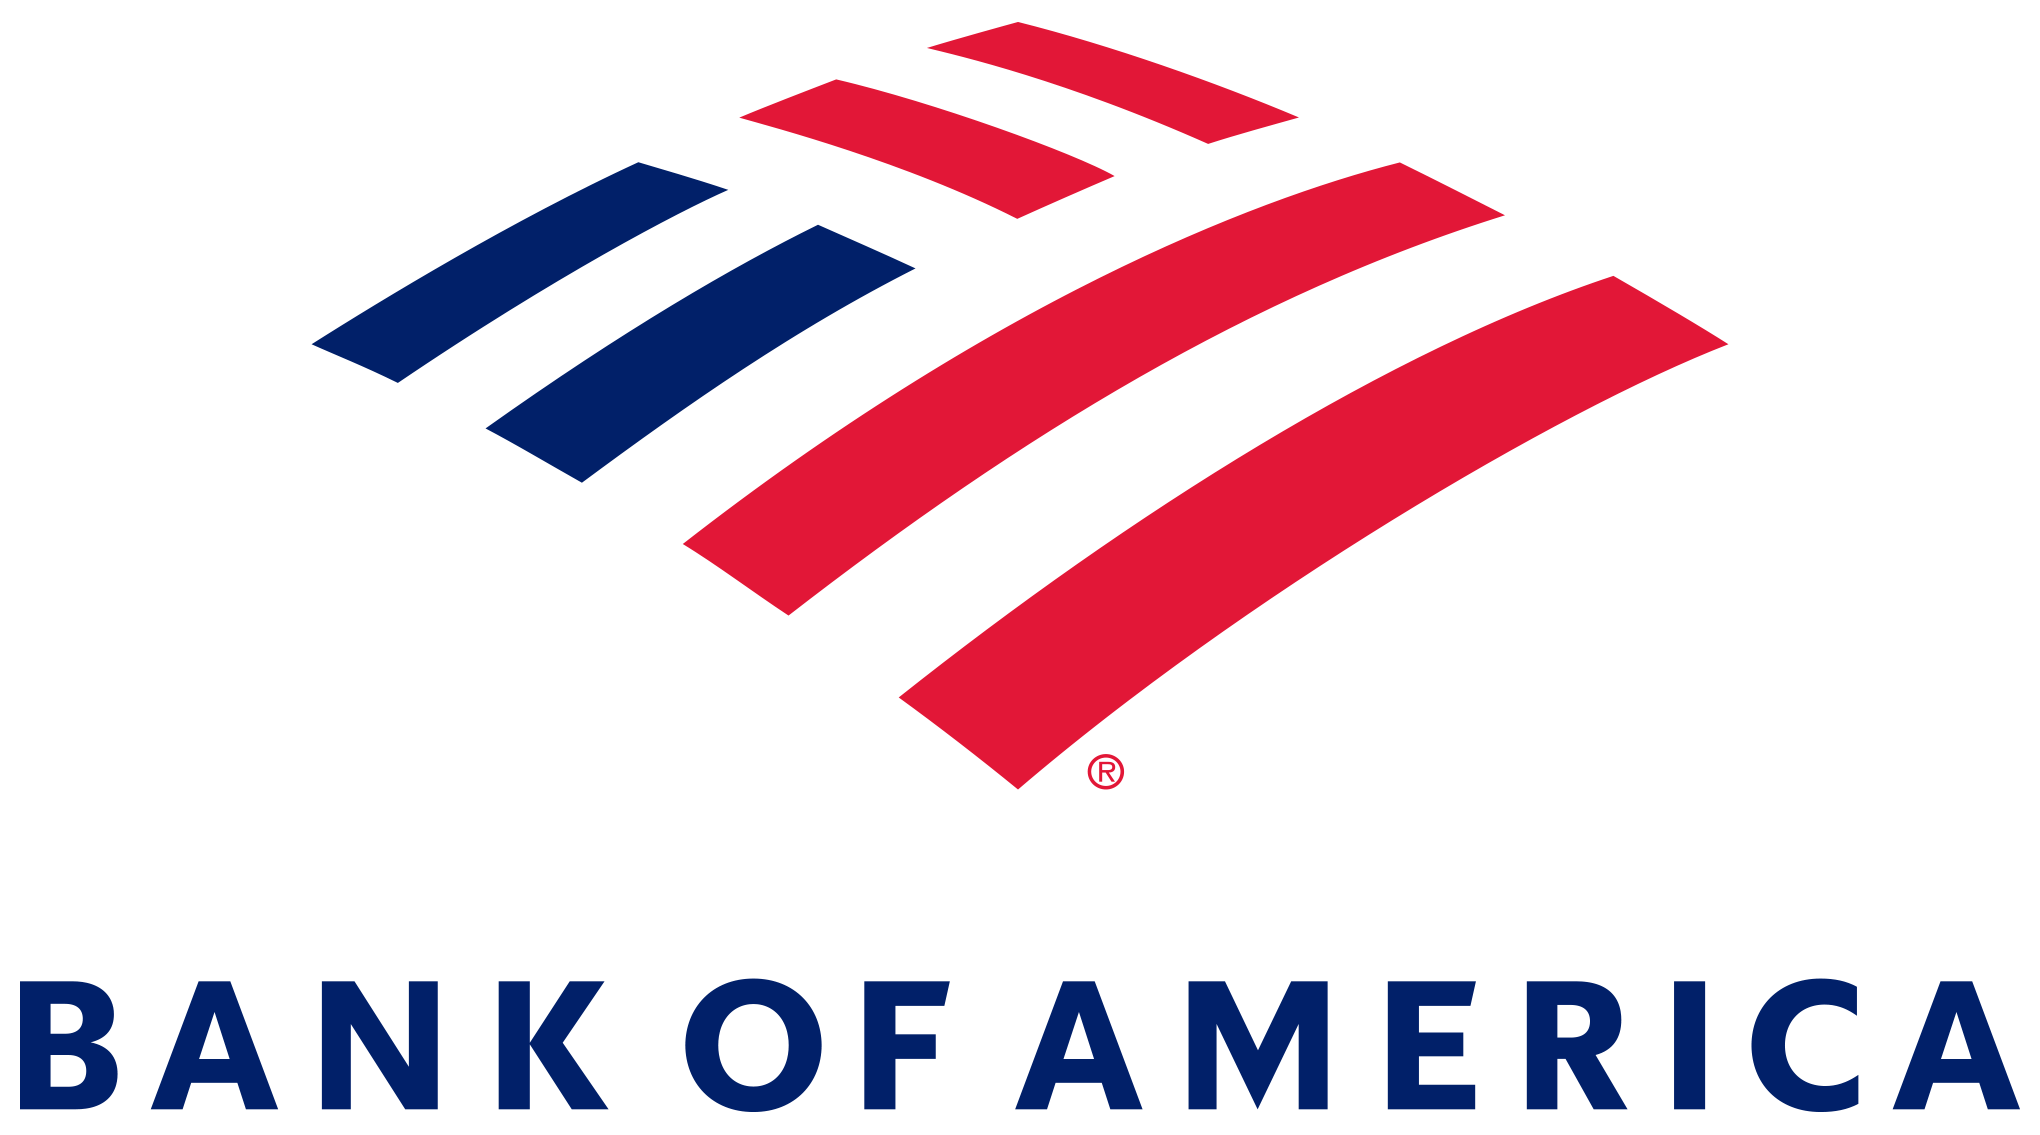 Brand New New Logo For Bank Of America By Lippincott Bank Of America Financial Logo Banks Logo